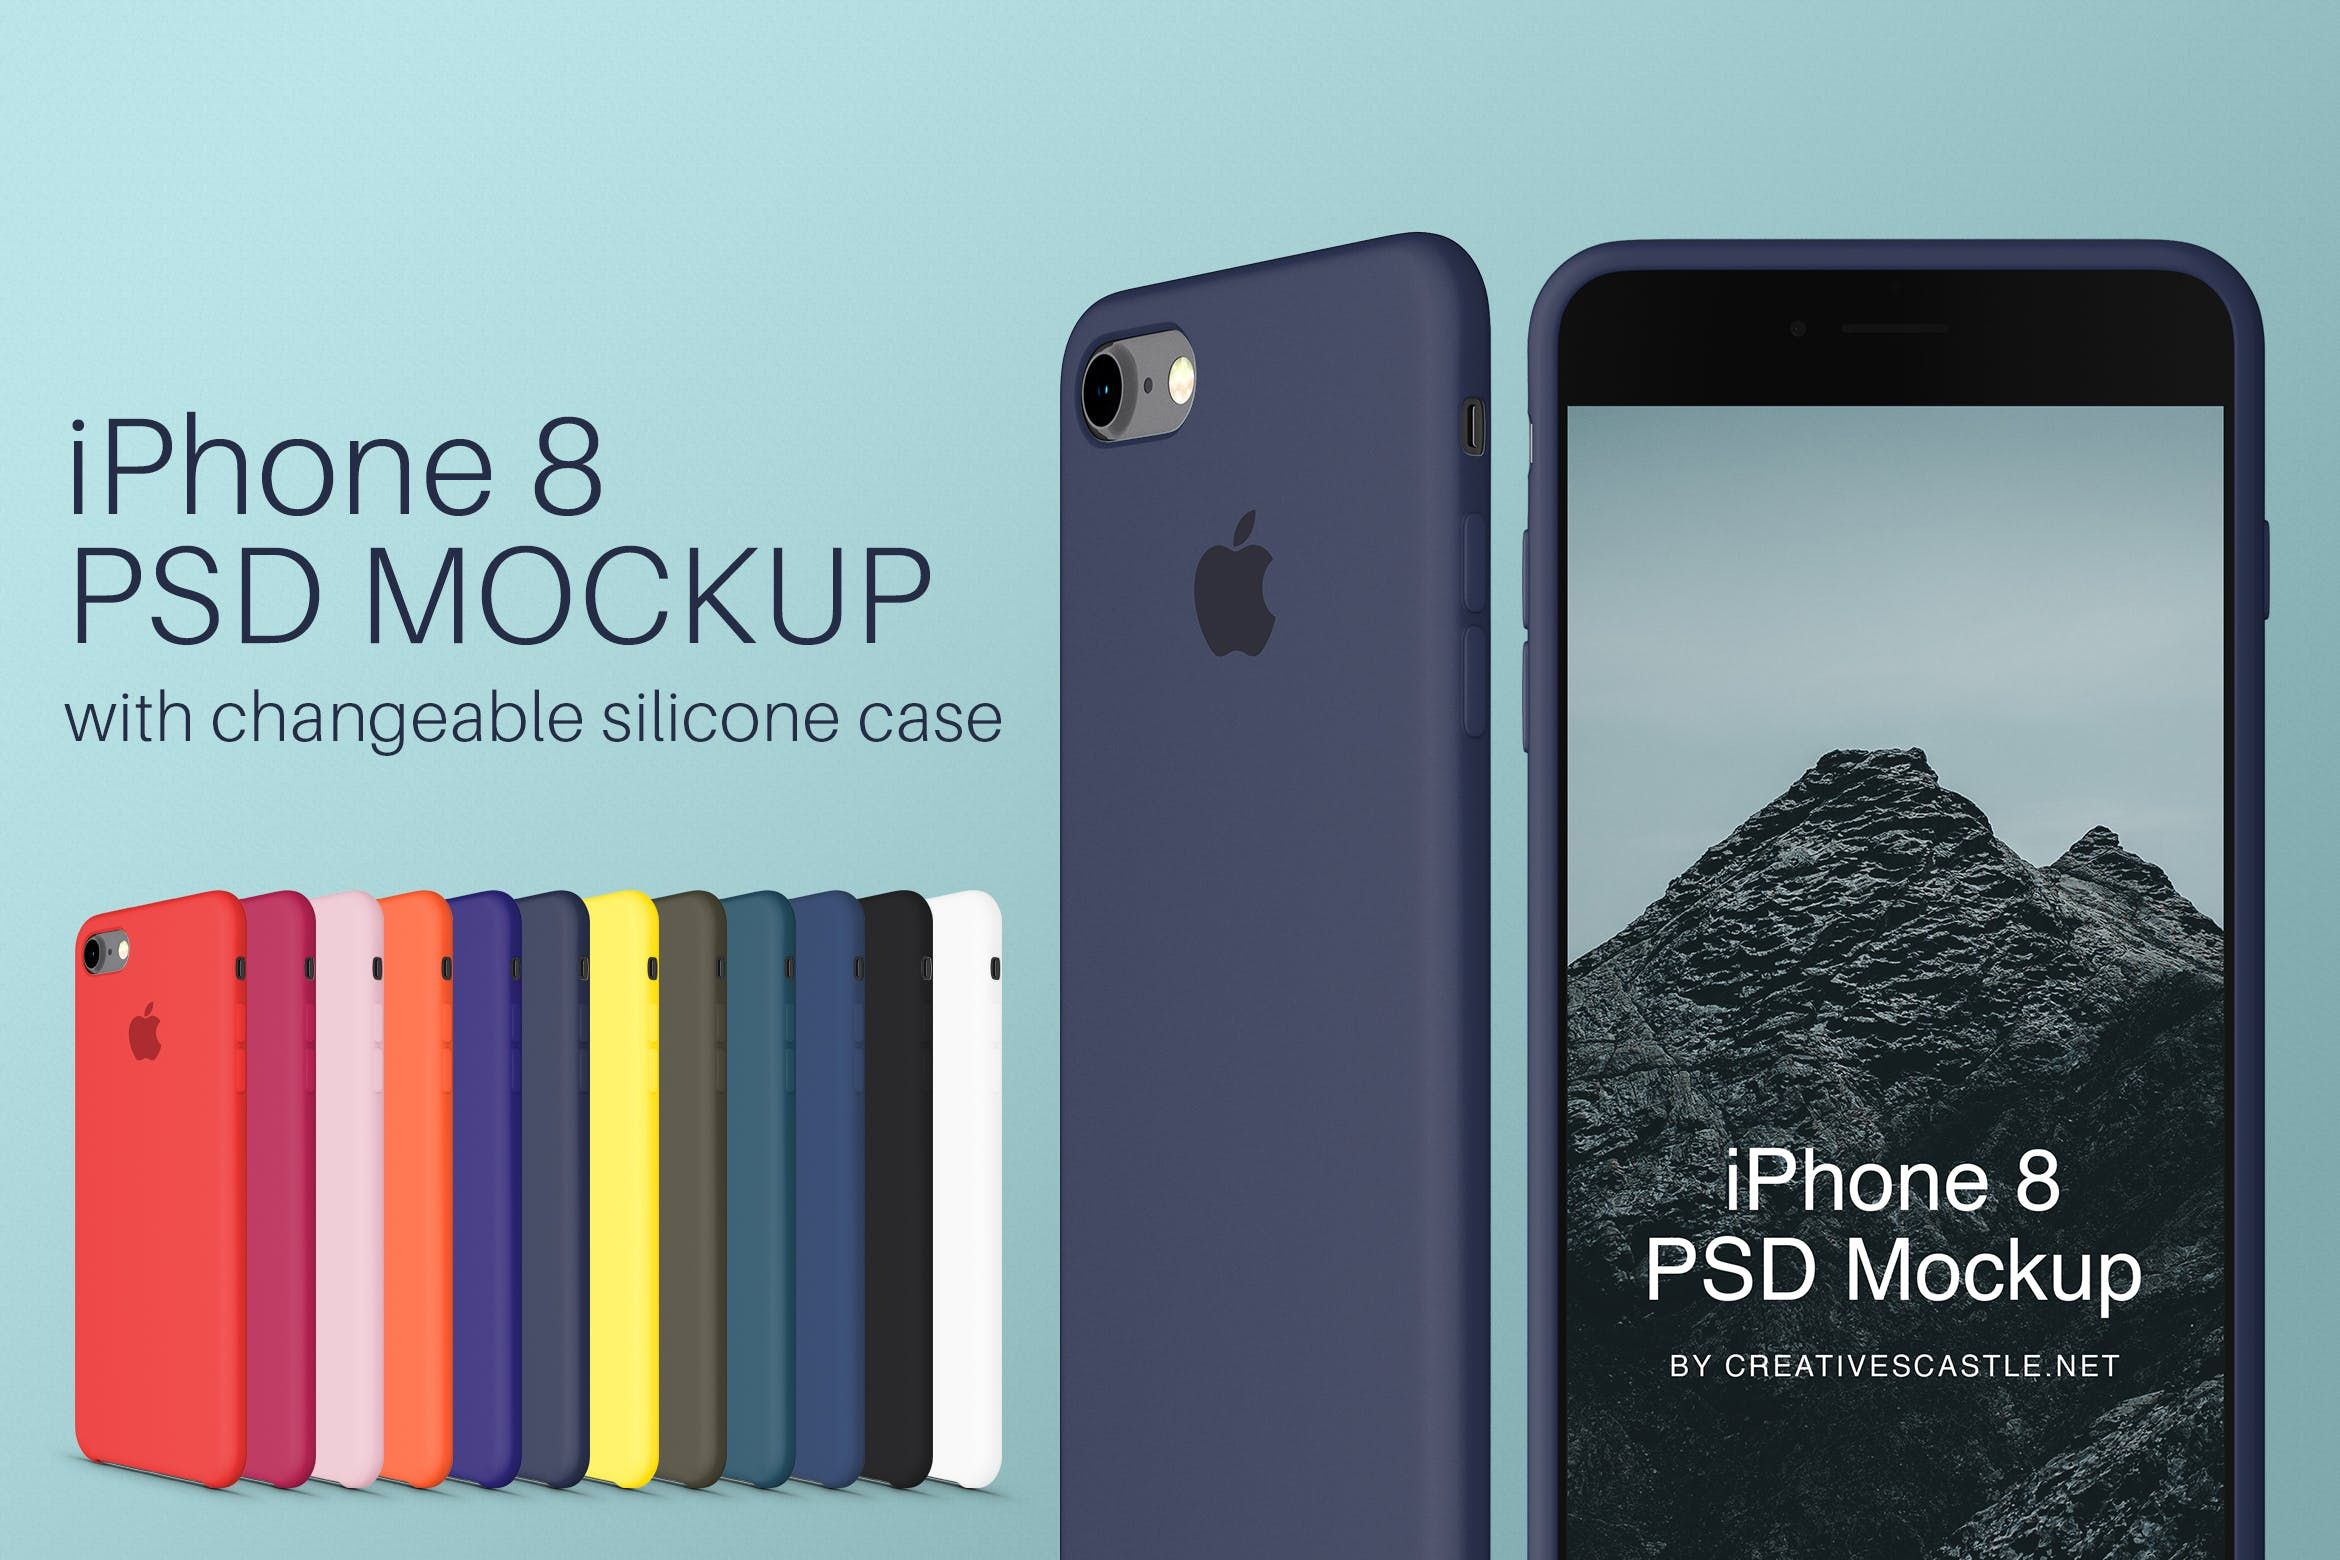 Iphone 8 Psd Mockup Silicone Cases Iphone Mobile Case Silicone Cover Color Mockup Psd Phone Apple Gadzhety